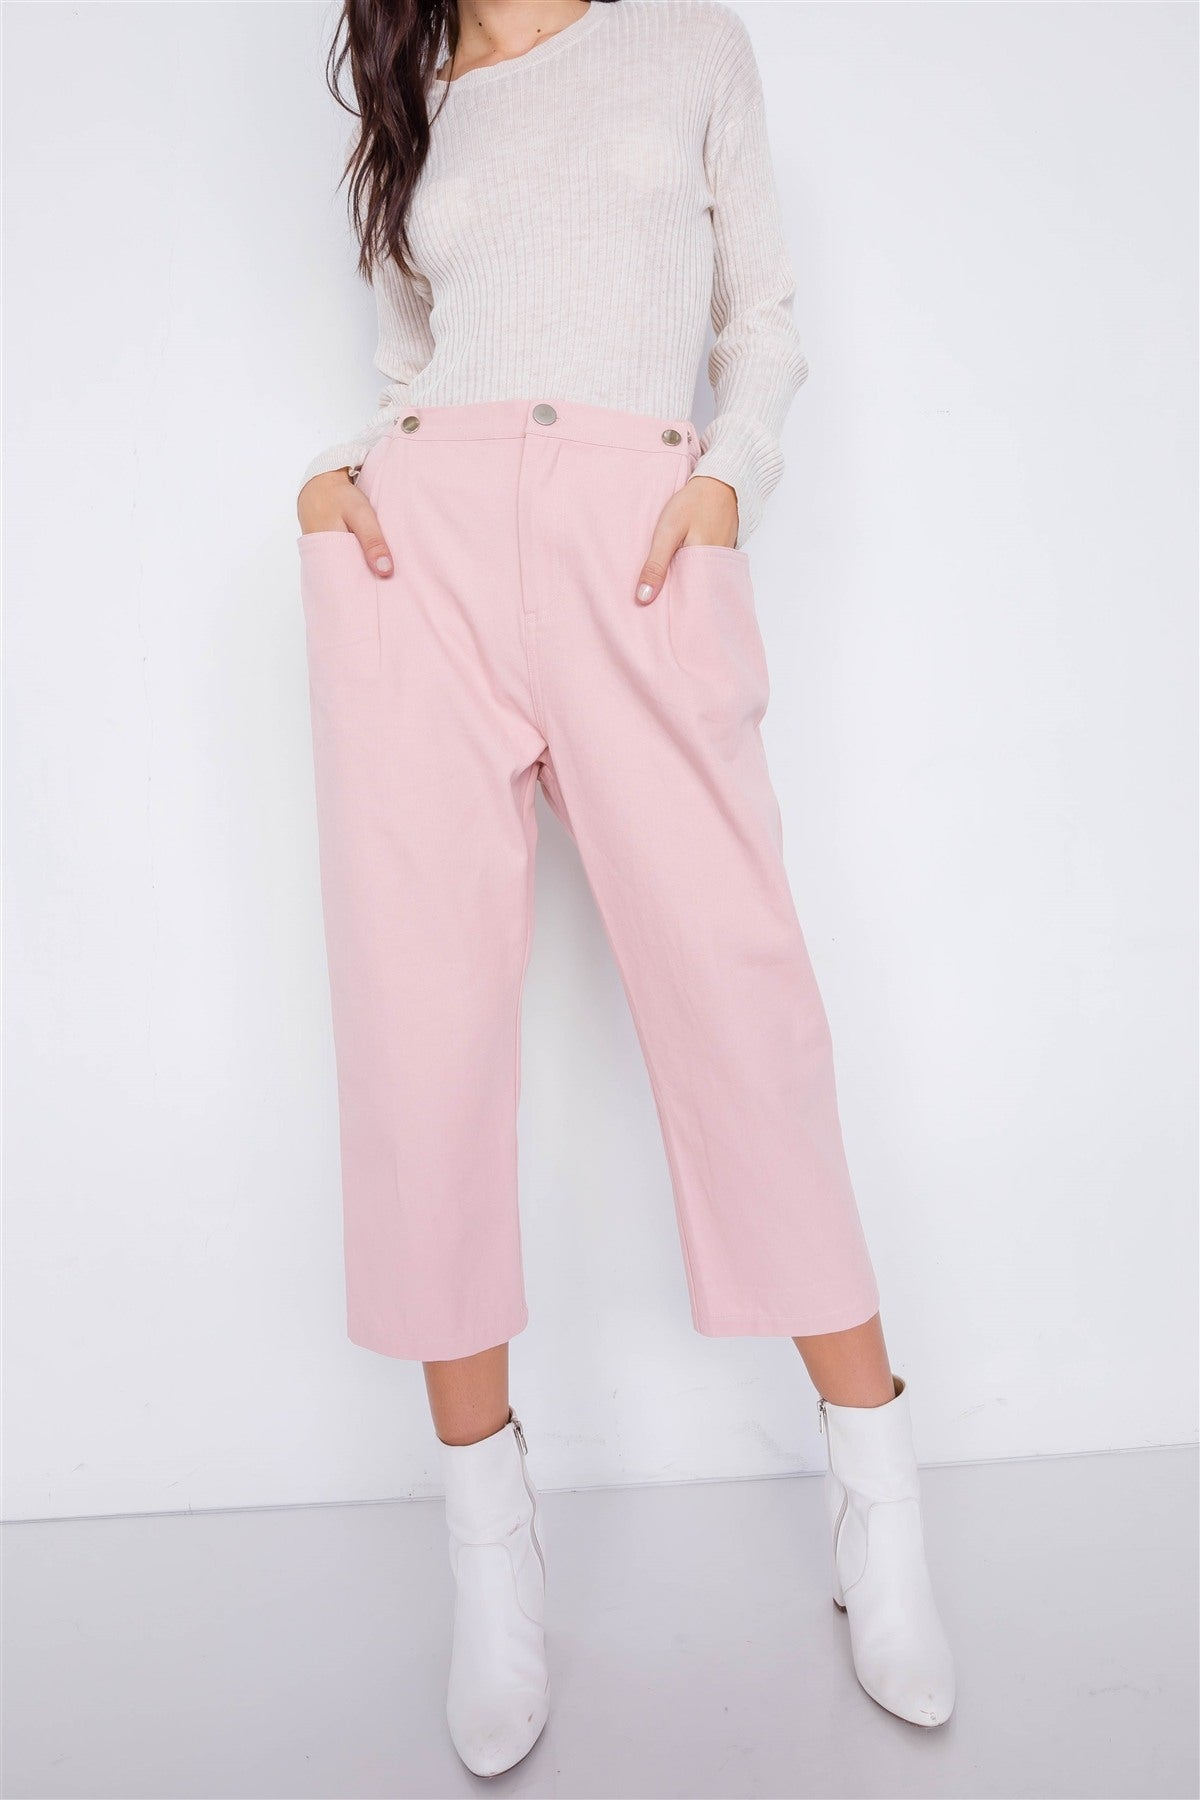 Pastel Chic Solid Ankle Wide Leg Adjustable Snap Waist Pants - Kendalls Deals